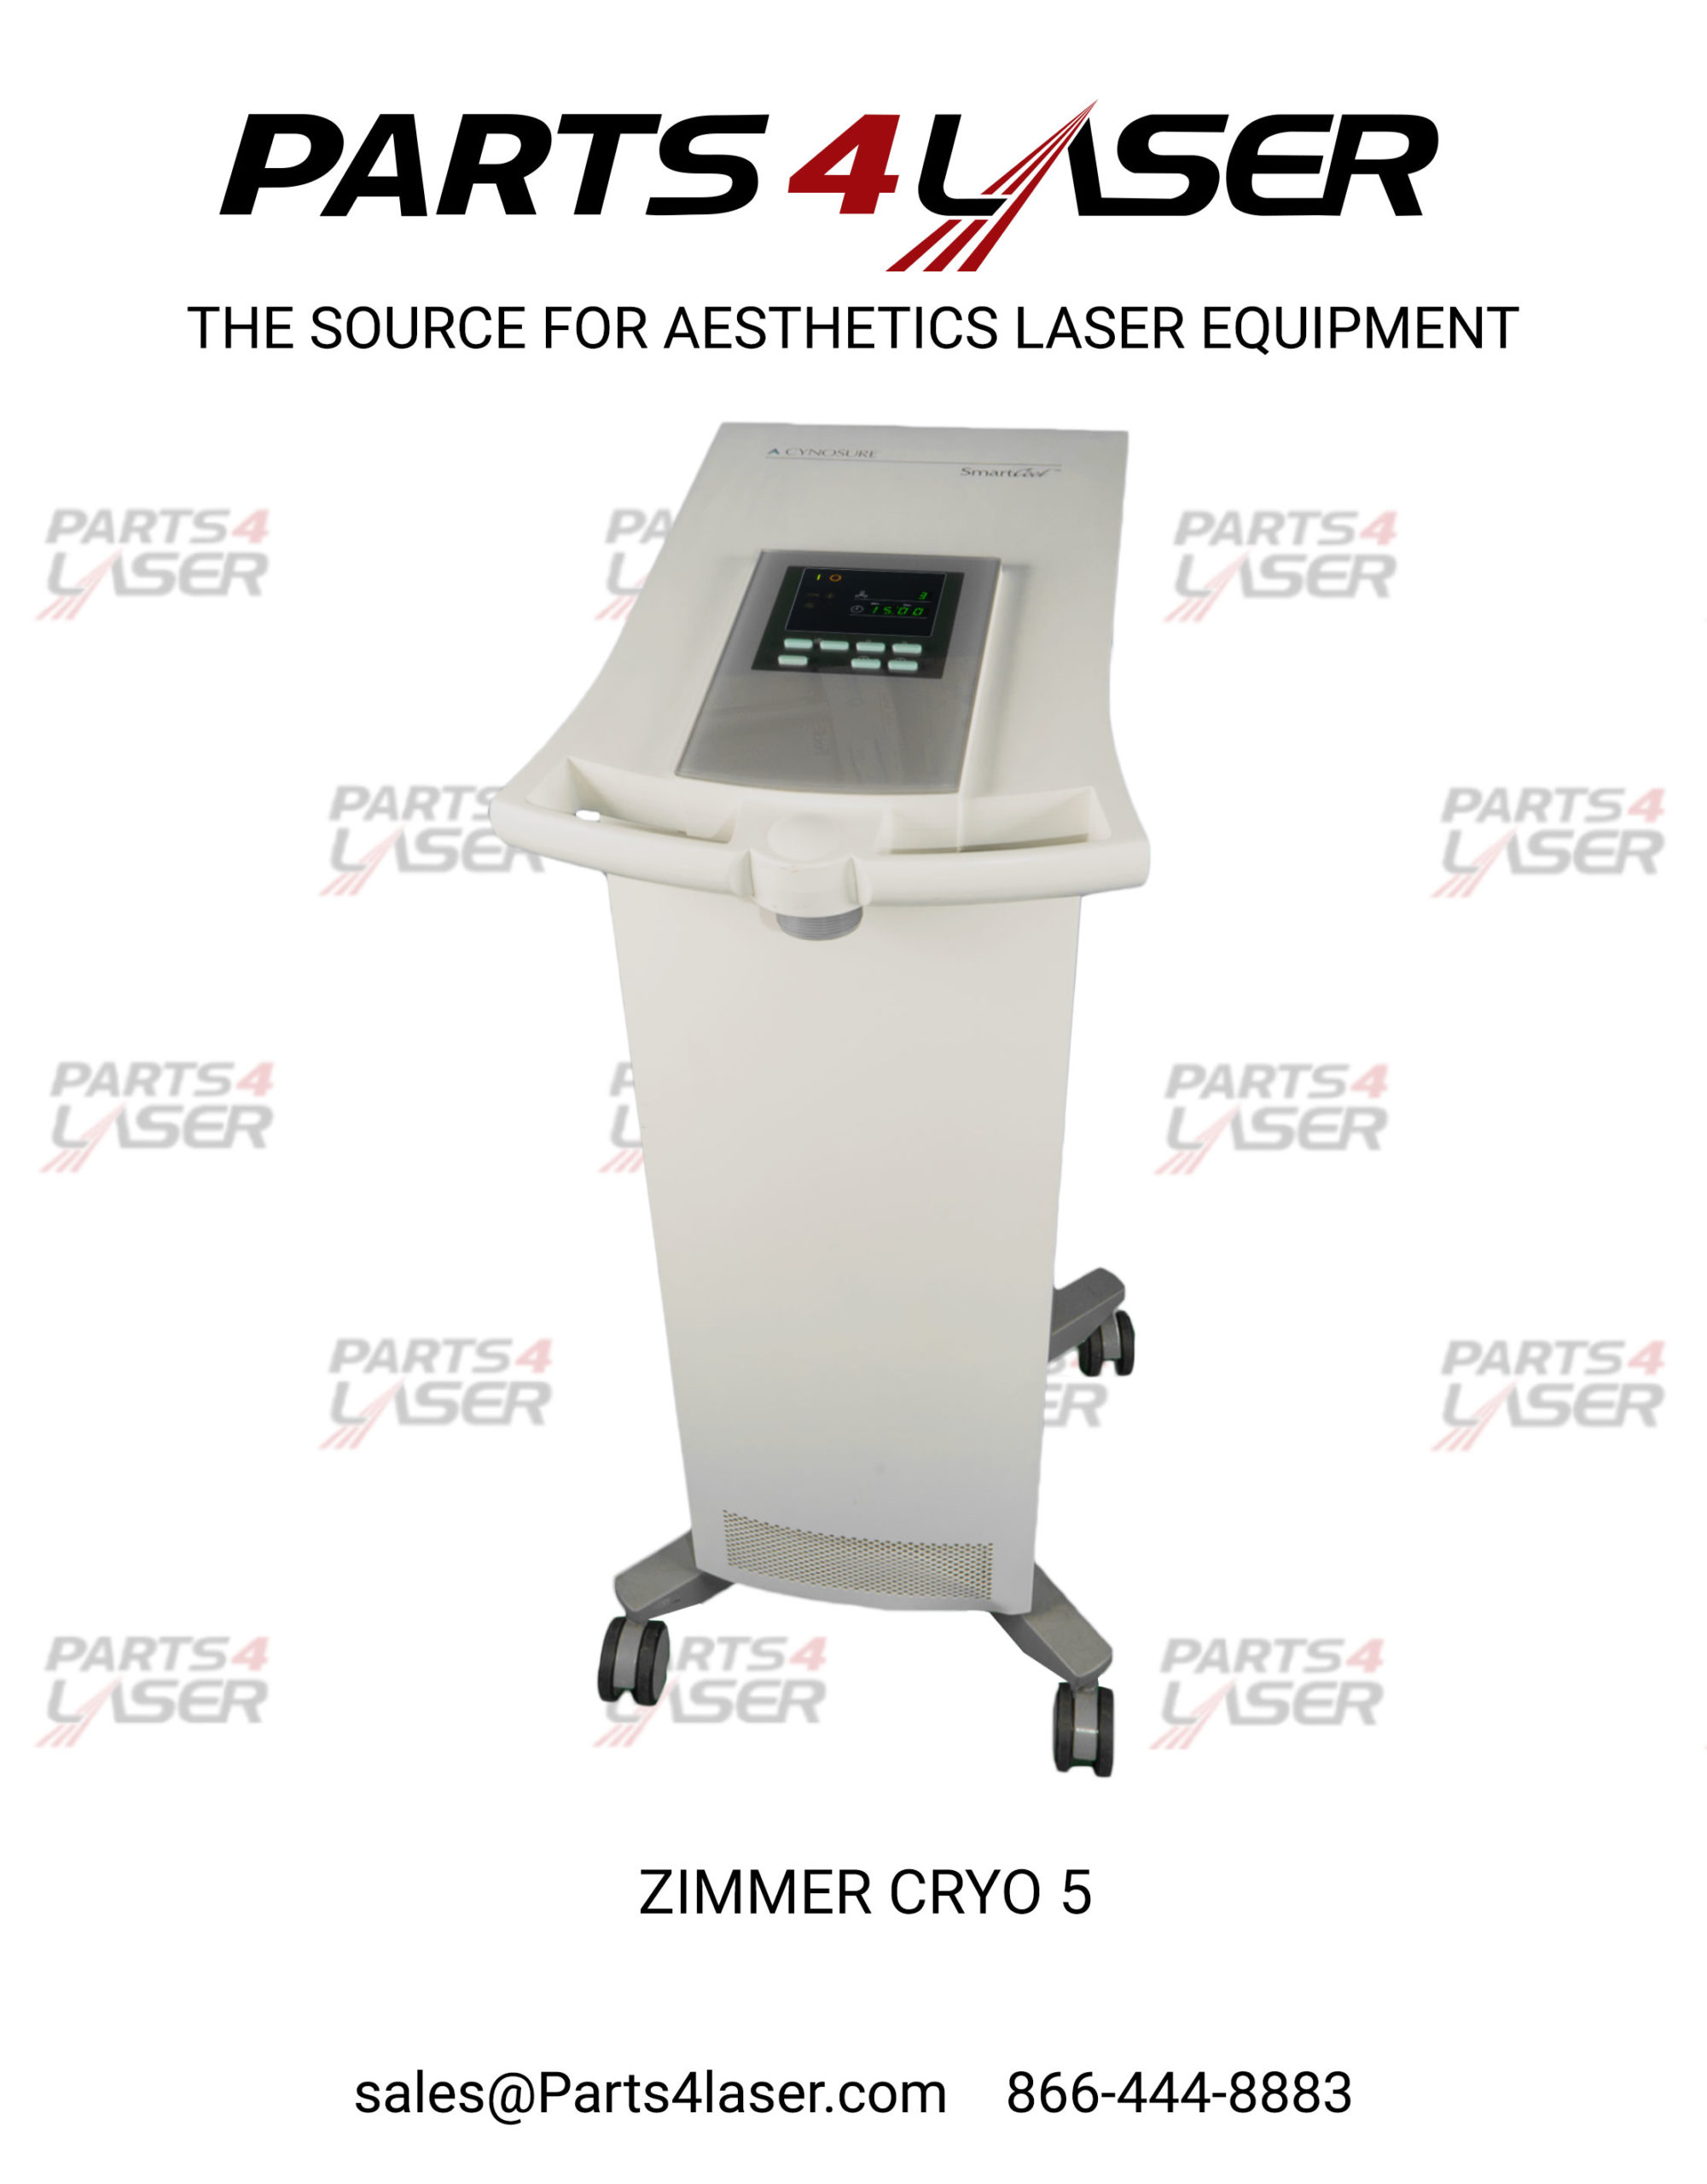 Cynosure Zimmer Cryo 5 Cryo 6 Handpiece Nozzle Air Cooled 100 7009 085 Chiller Hand Piece Holder Parts4laser